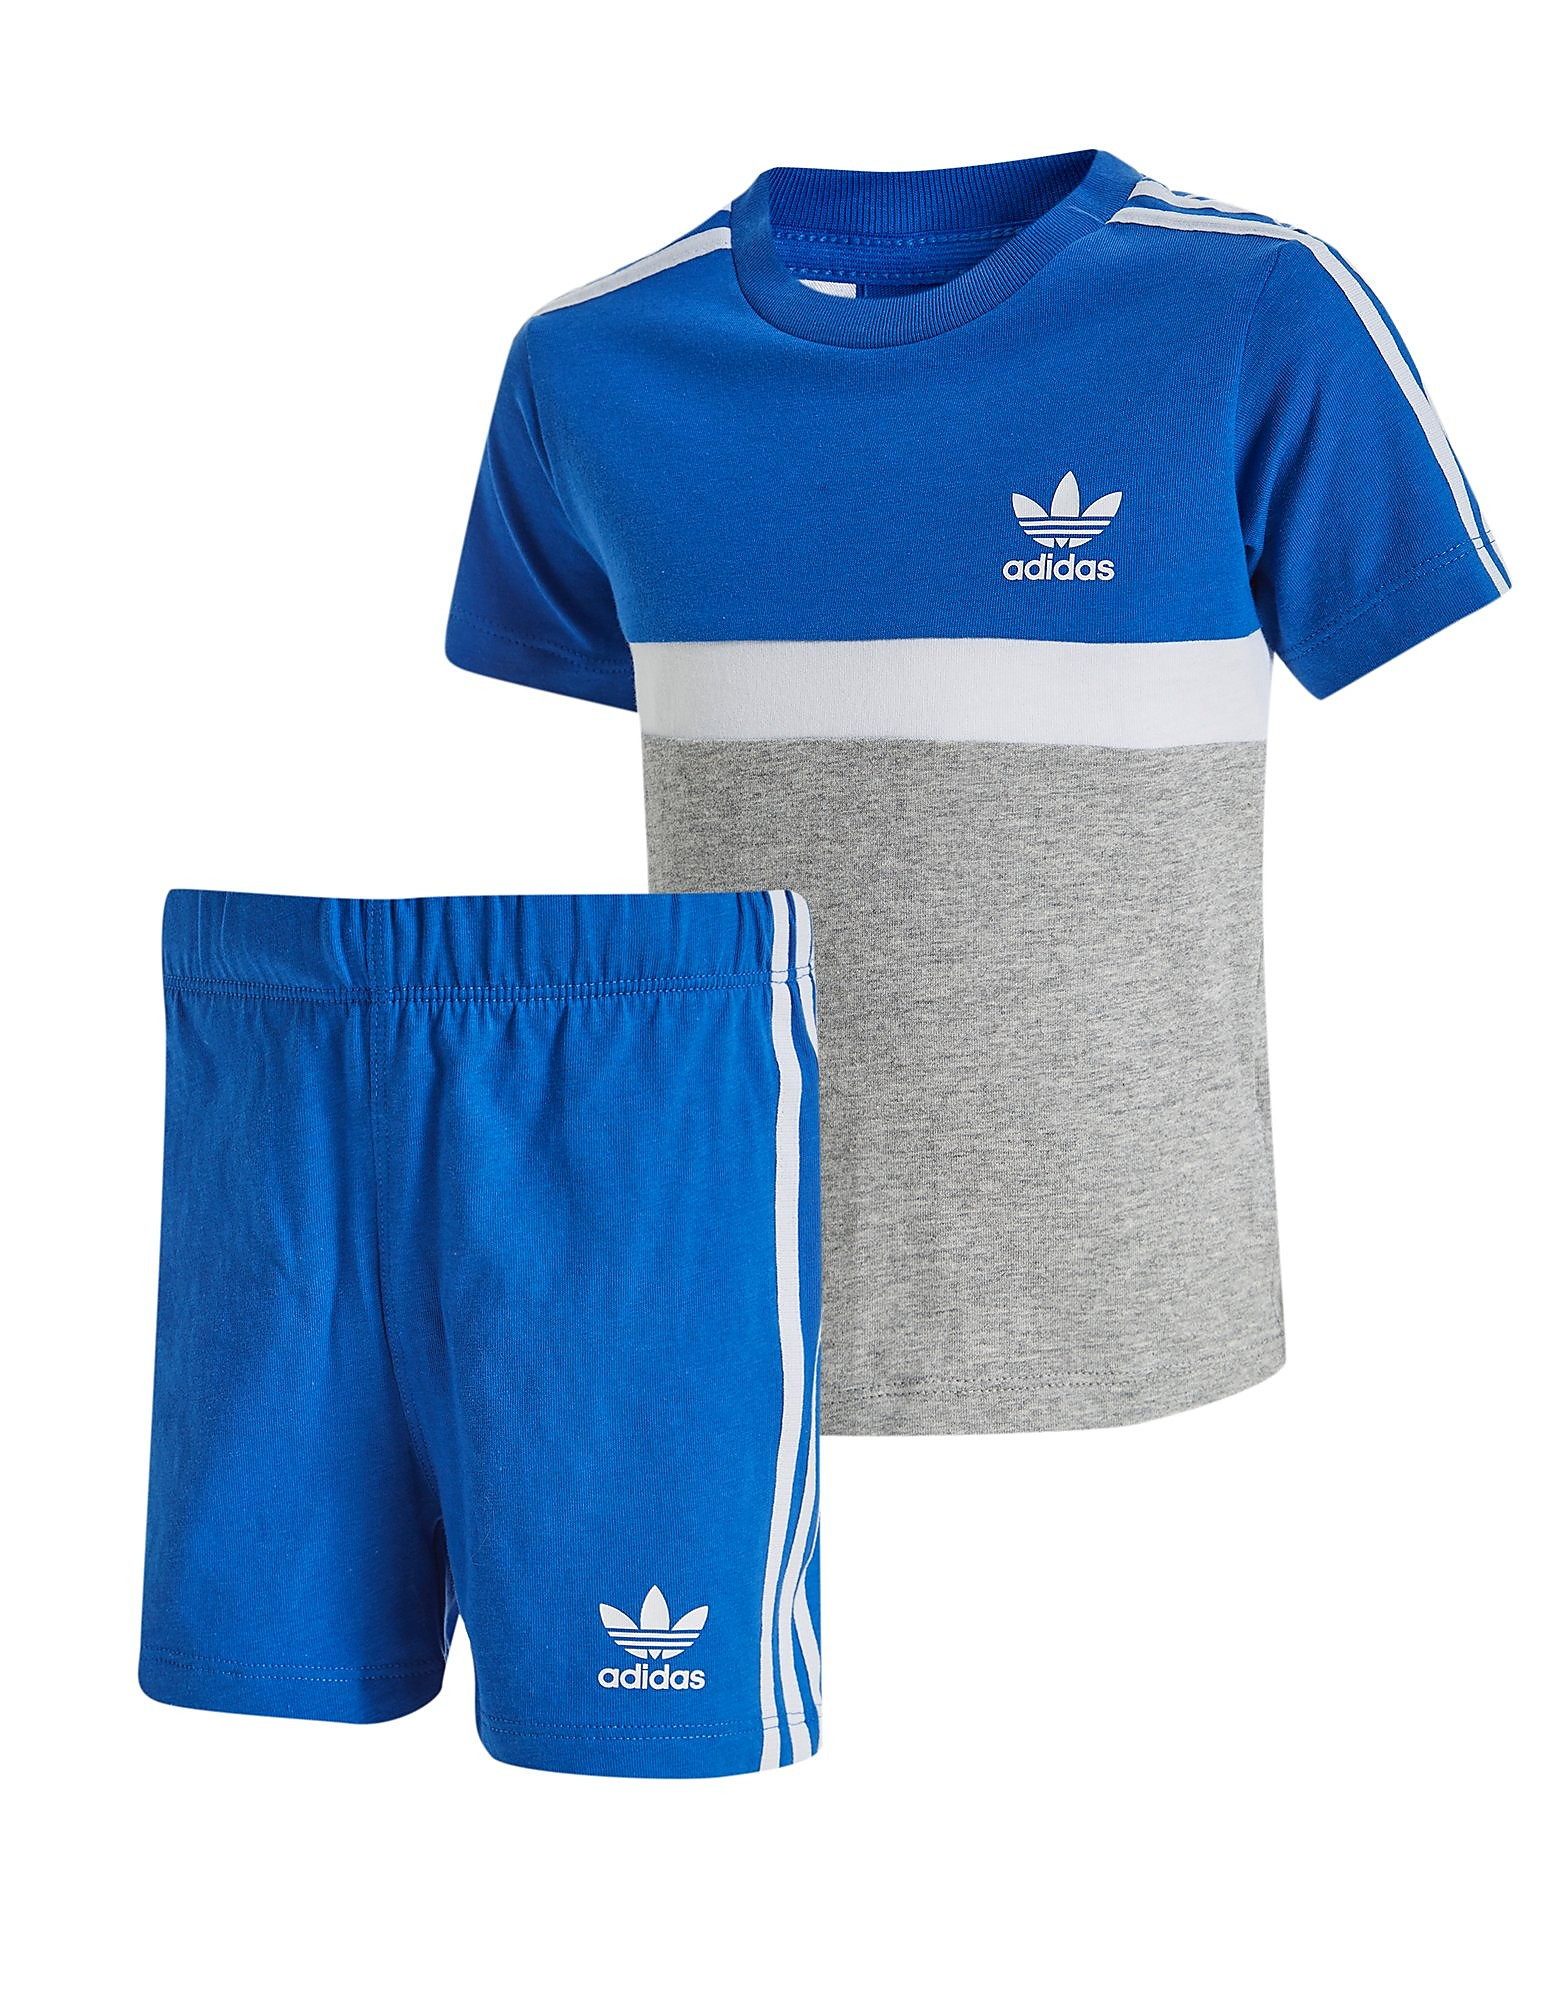 adidas Originals Itasca T-Shirt/Short Set Infant